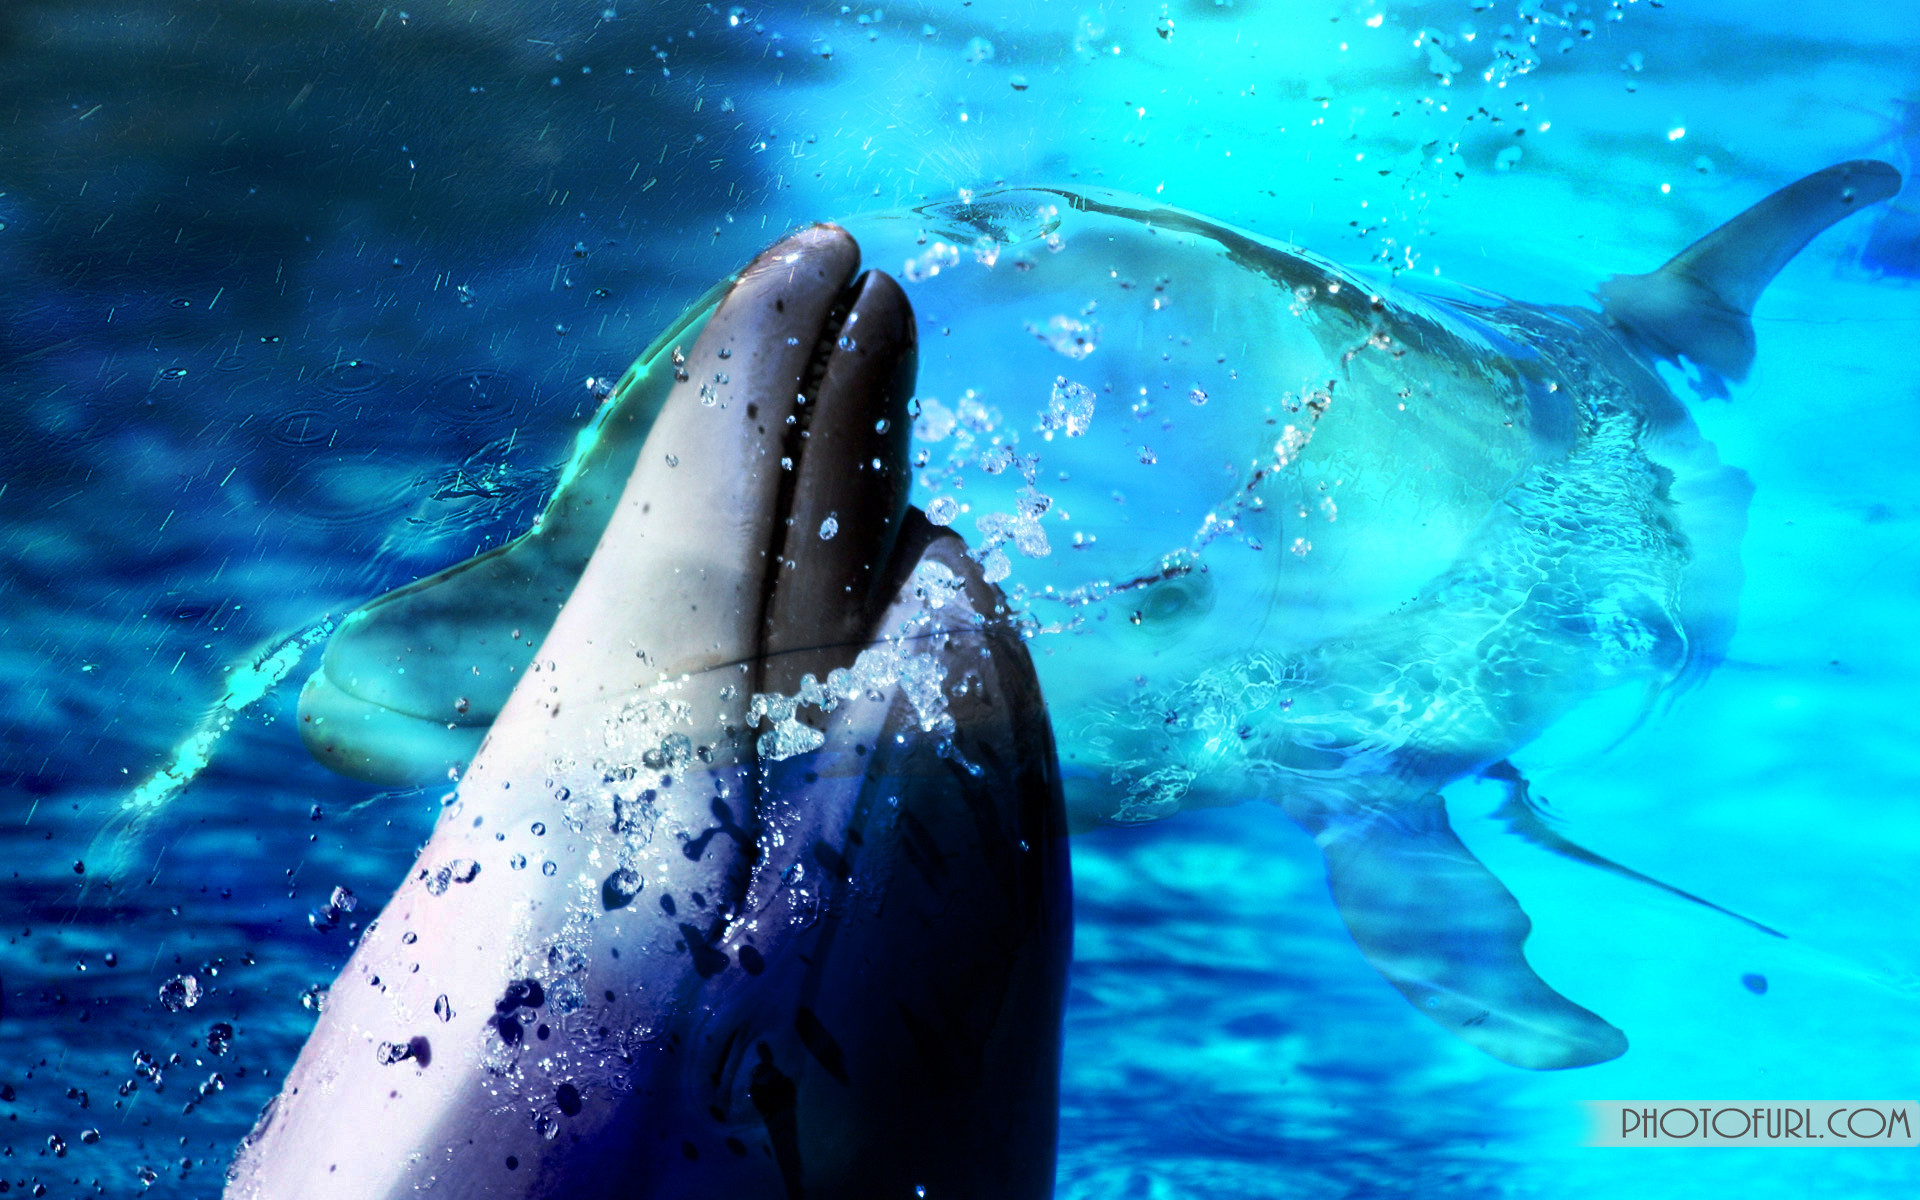 Animated Dolphin Screensavers Wallpaper 46 images